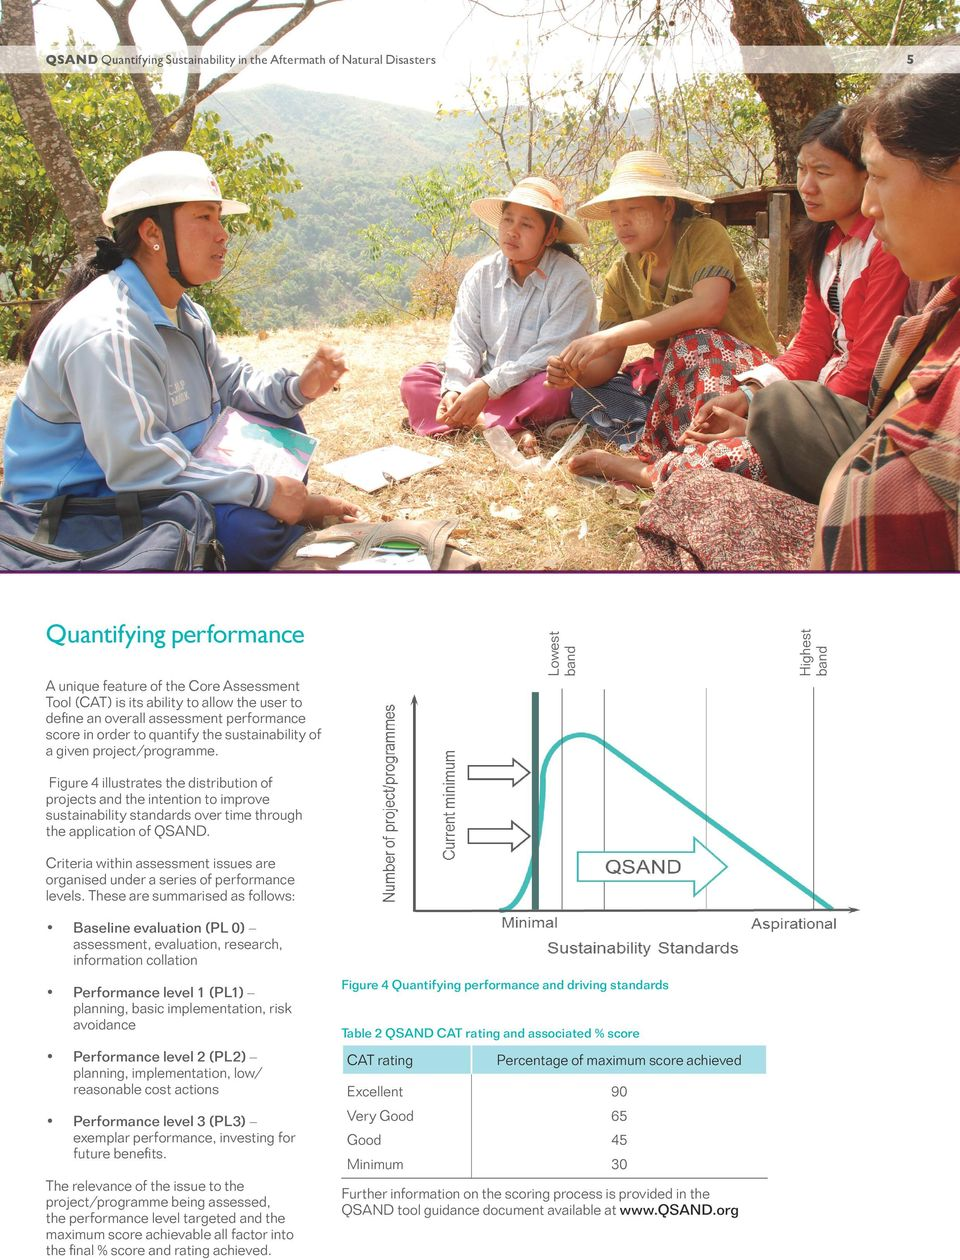 Figure 4 illustrates the distribution of projects and the intention to improve sustainability standards over time through the application of QSAND.